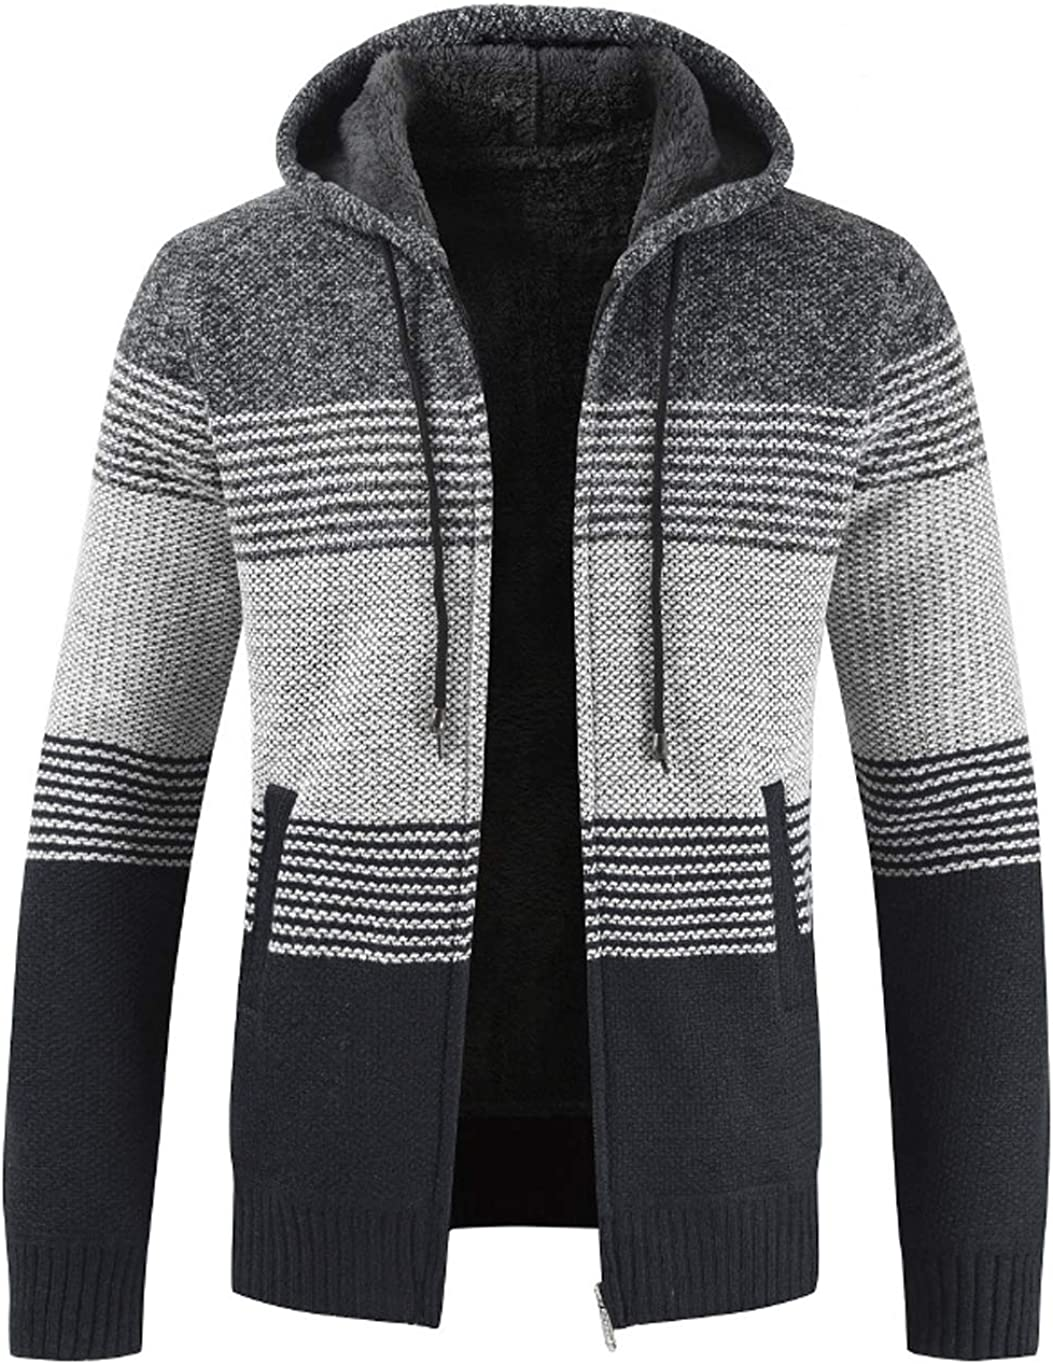 chouyatou Men's Thickened Sherpa Lined Contrast Color Hooded Knit Sweater Cardigan